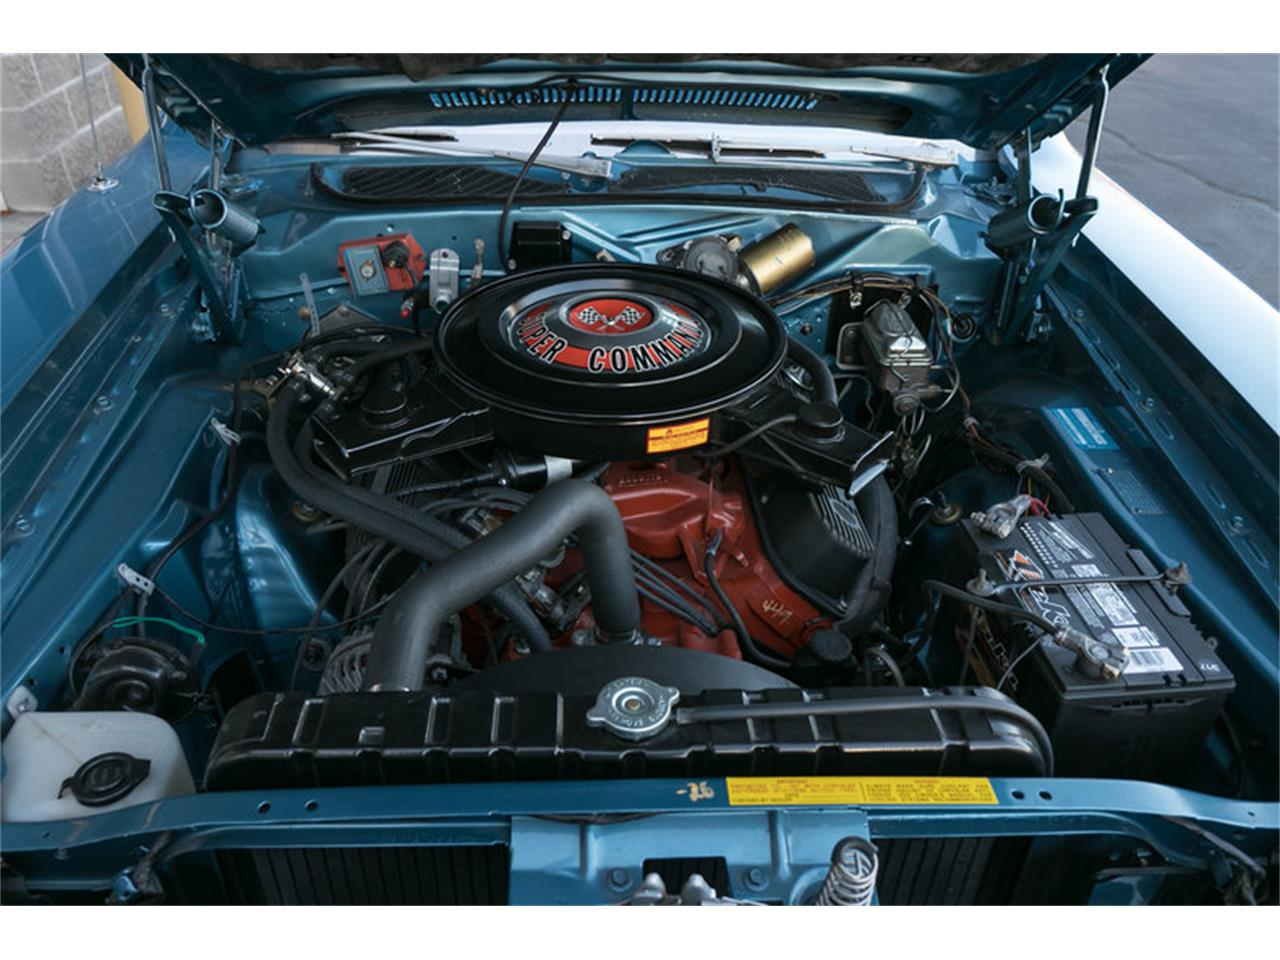 Large Picture of Classic 1971 Plymouth GTX located in St. Charles Missouri - $52,995.00 Offered by Fast Lane Classic Cars Inc. - MCFV